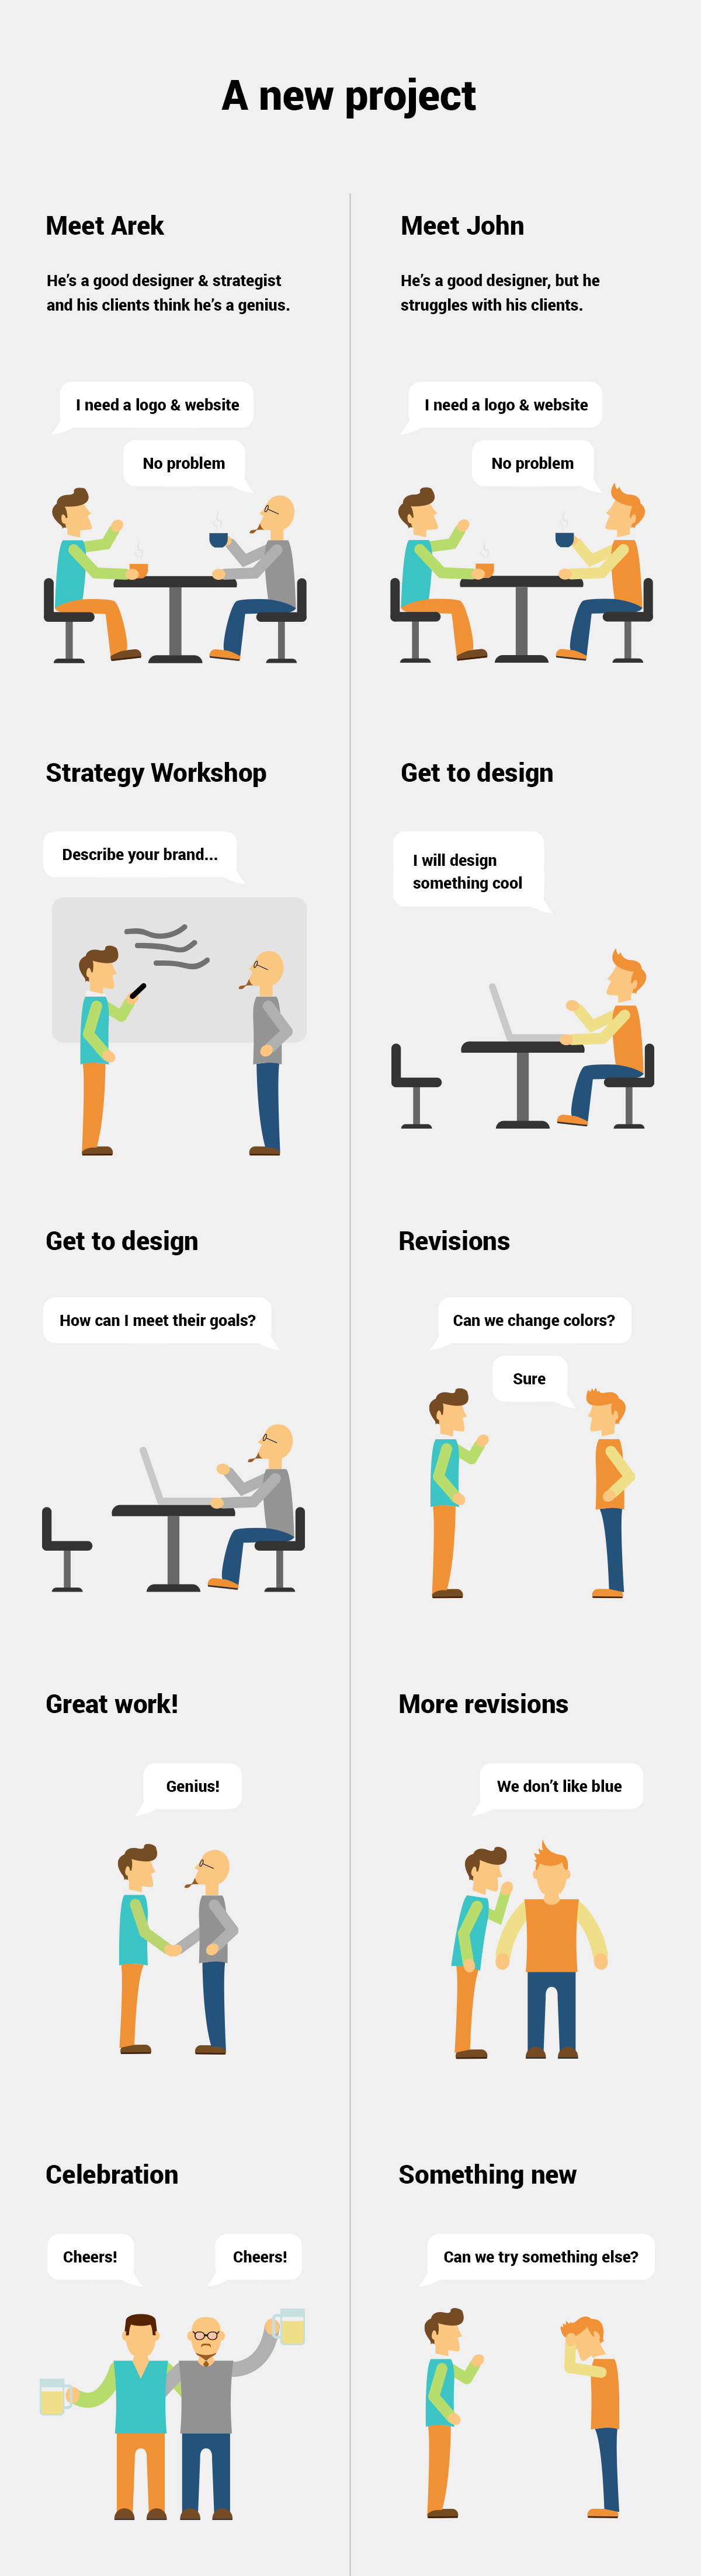 Approaching a new project by a designer vs. strategist